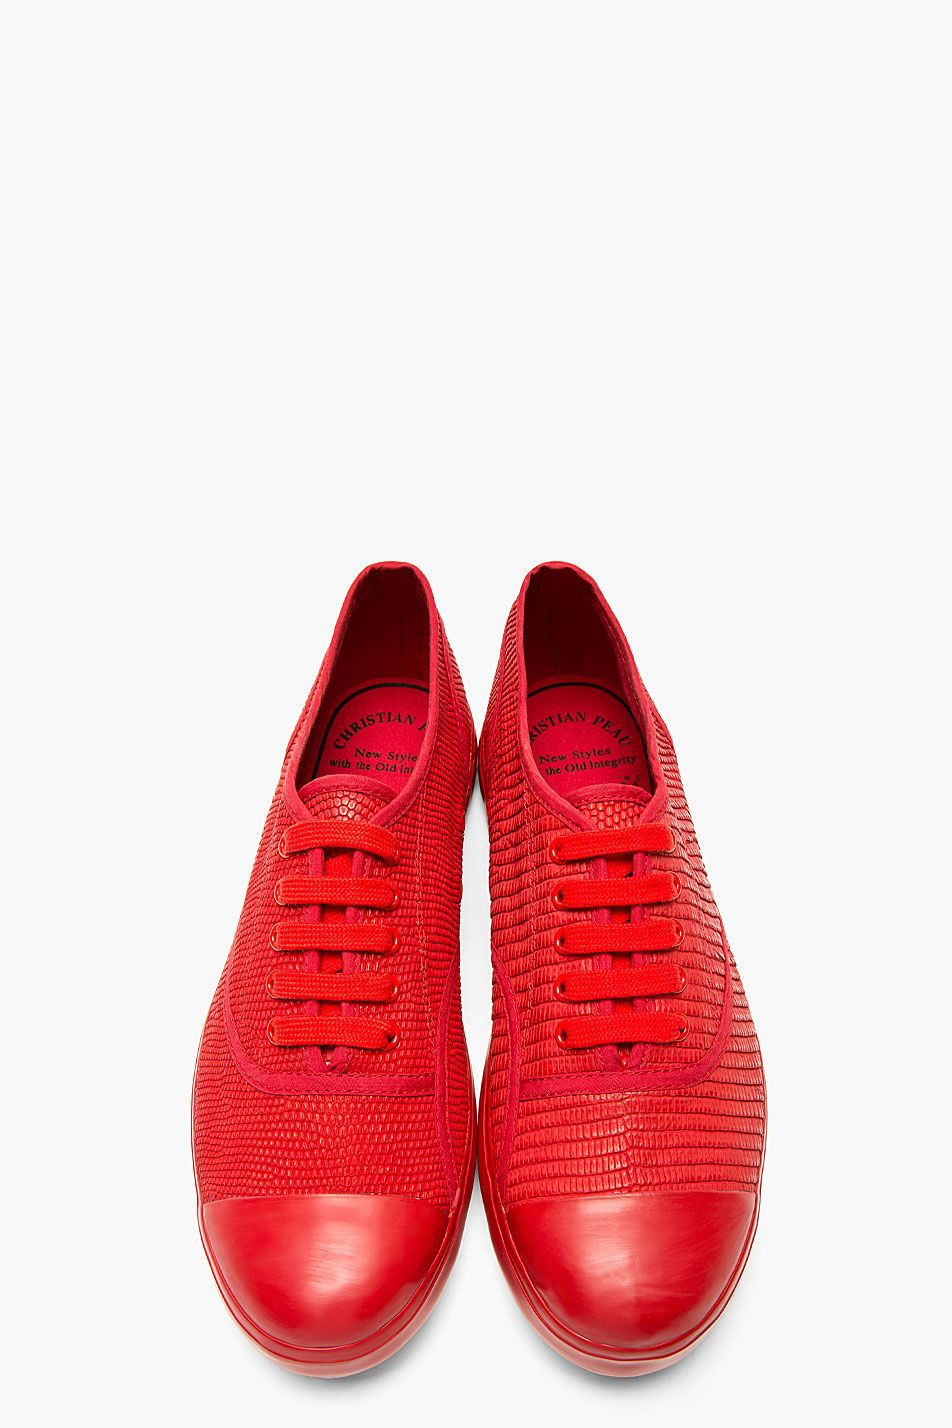 CHRISTIAN PEAU Crimson Red Snakeskin Canvas Low Top Sneakers.